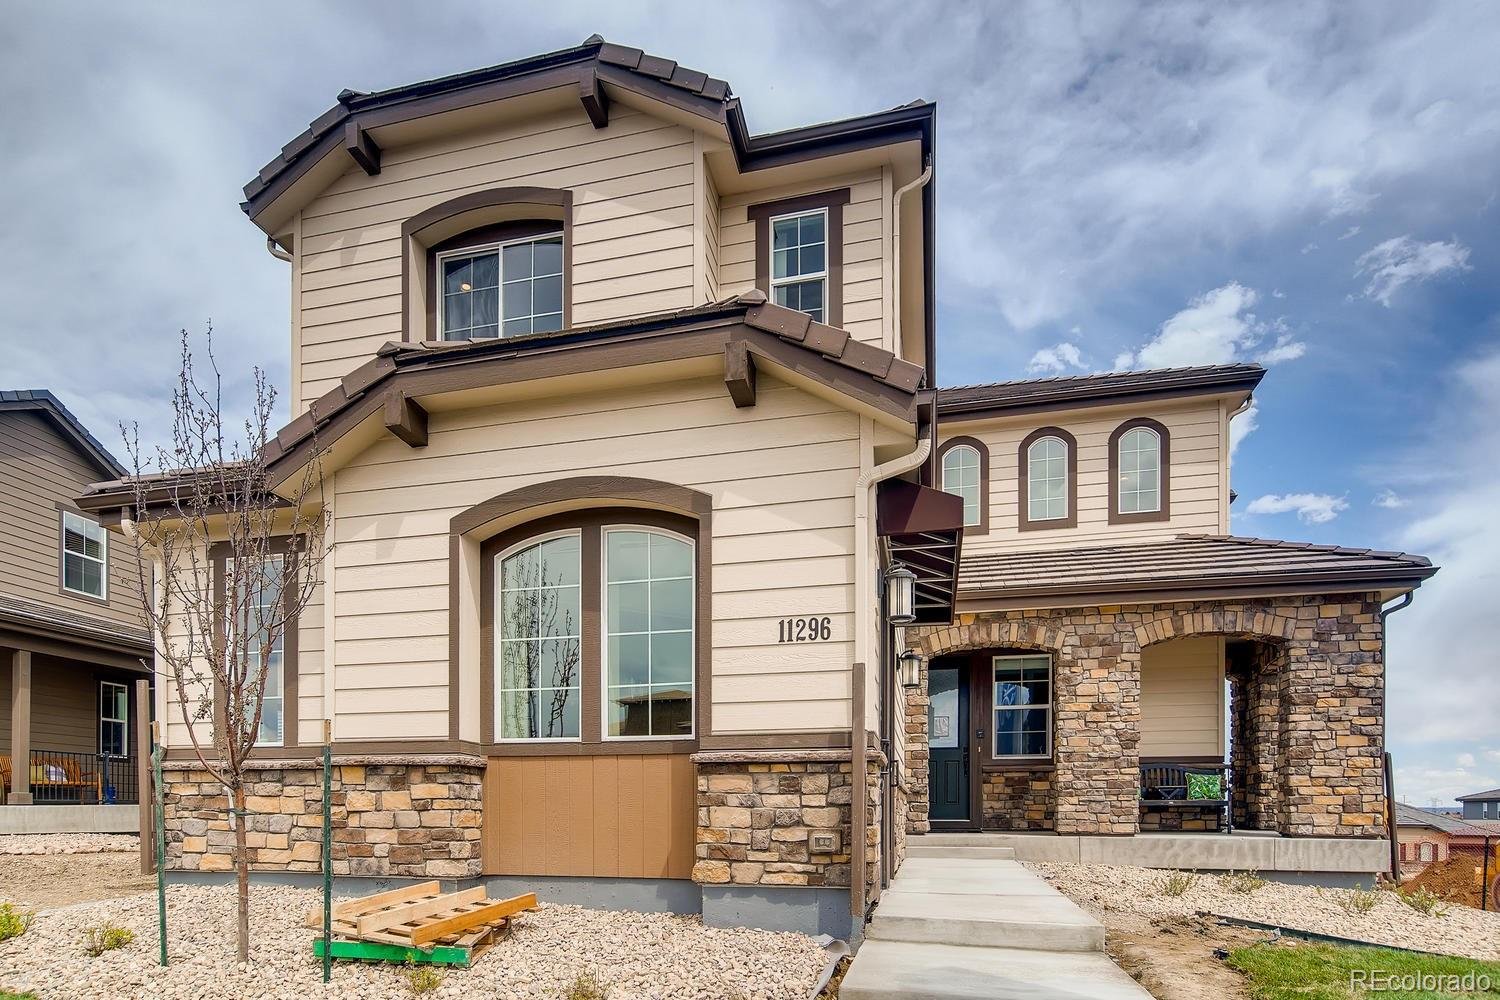 """Gorgeous, one-of-a-kind Shea Evergold 2 story sales model Home available September/October 2020.  Backs to an open space and features 5 beds (4 up / 1 main), 5.5 baths, kitchen, great room, bonus/flex room, dining room, upper laundry, loft, unfinished garden level basement, 4 car garage spaces (2 + 2 garages)  This home has it all.  Beautiful high-end design finishes & upgrades throughout and loaded with custom built-ins, beams and so much more. Large Kitchen with Island, Prep Sink, GE Profile Appliances including Refrigerator, and Monogram Beverage Center; KitchenCraft White and Grey 42"""" Maple Cabinets with Roll-out Shelves and beautiful Quartz Countertops Throughout; Ample Storage with Custom Walk-in Pantry; 72"""" Dual-sided Primo Fireplace in Great Room with Floor to Ceiling Tile Surround, and 6x36 Tile Floors; Main Floor Bedroom with En-suite Bathroom; Spacious Valet/Mudroom with Bench & Walk-in Closet; 8' Doors Throughout including Barn Doors at Loft; 2 story foyer and great room; Extended Covered Deck with Outdoor Fireplace and Gas Line for Grilling; Landscaping and partial fencing. This stunning home thoughtfully combines elegance & luxury and is designed with today's busy lifestyle in mind. Don't miss your opportunity. This is a must see. Welcome Home!"""